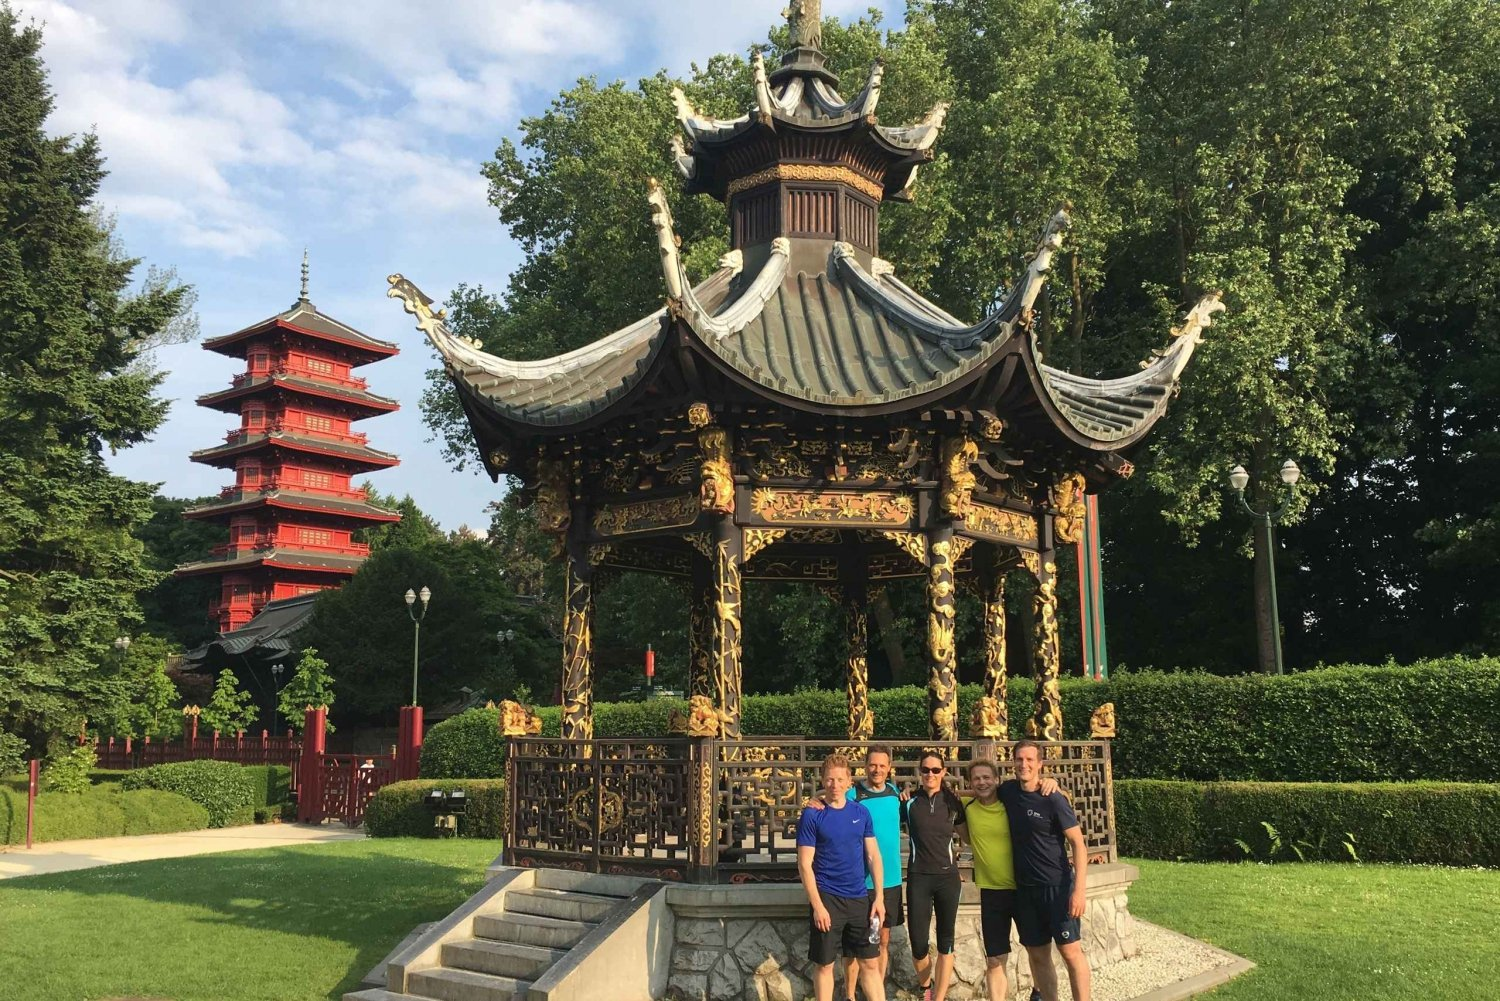 SightJogging: Atomium, green parks and Belgian history